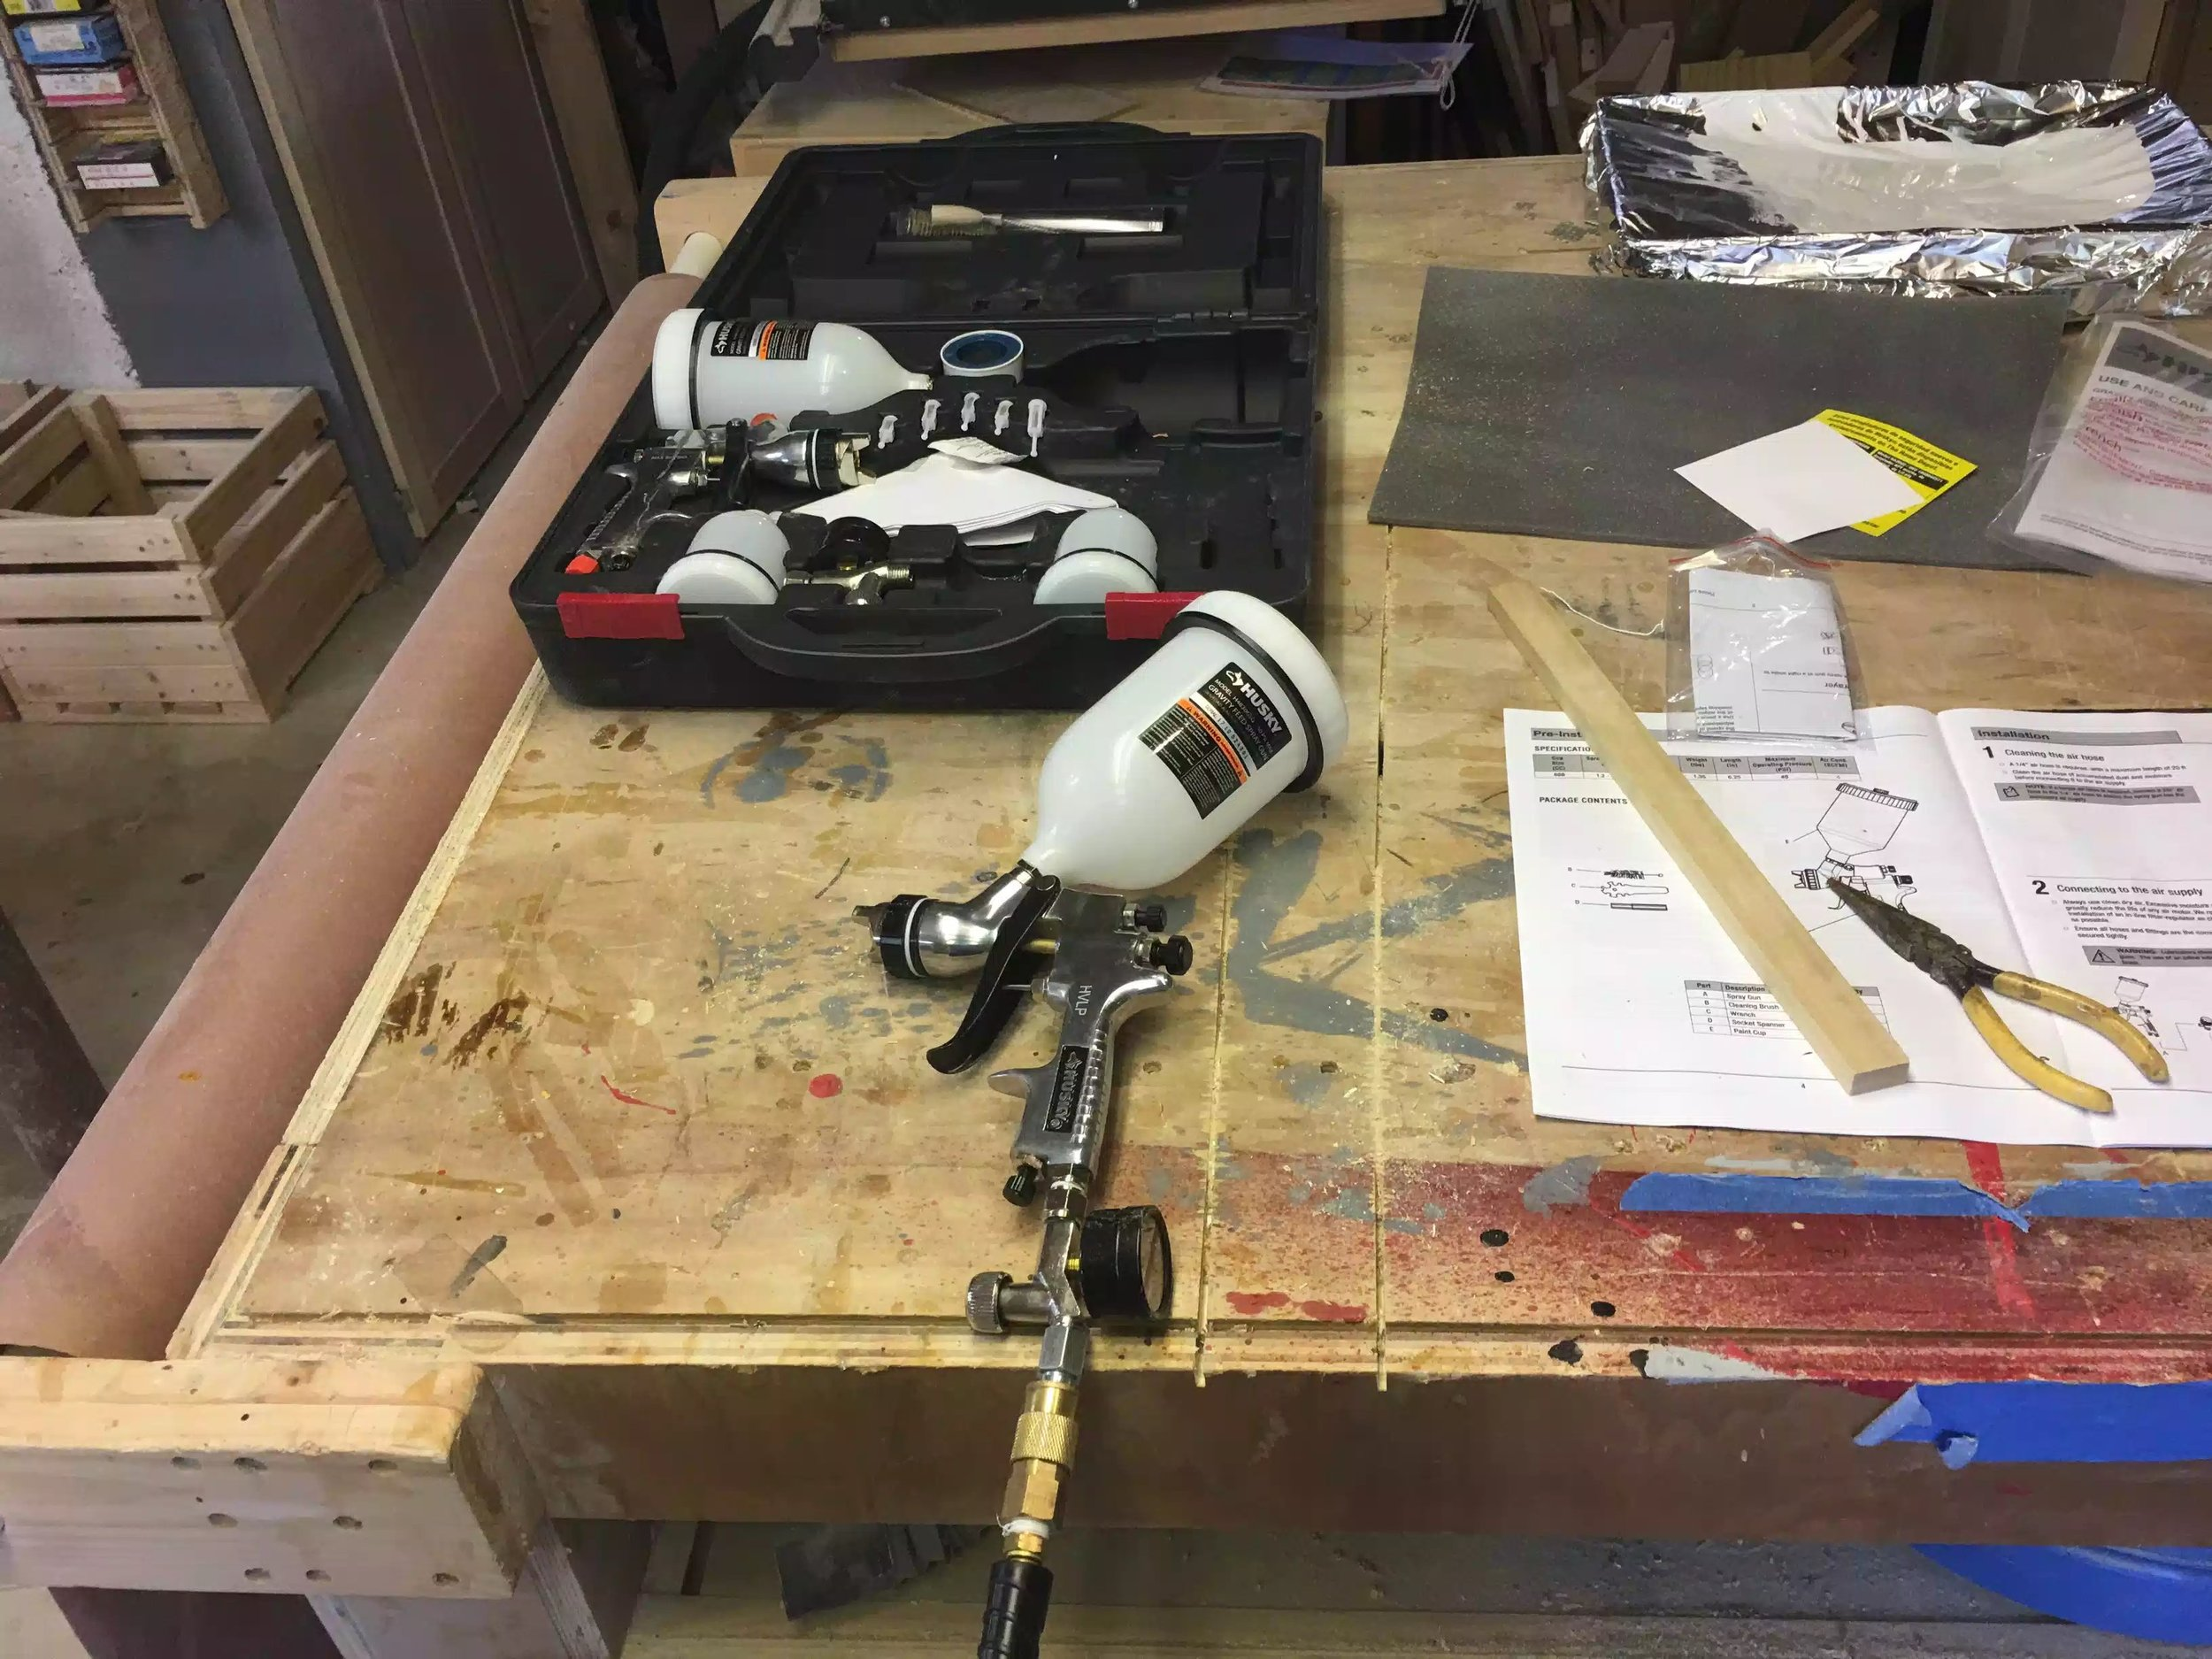 Here is a picture of my HVLP spray gun.